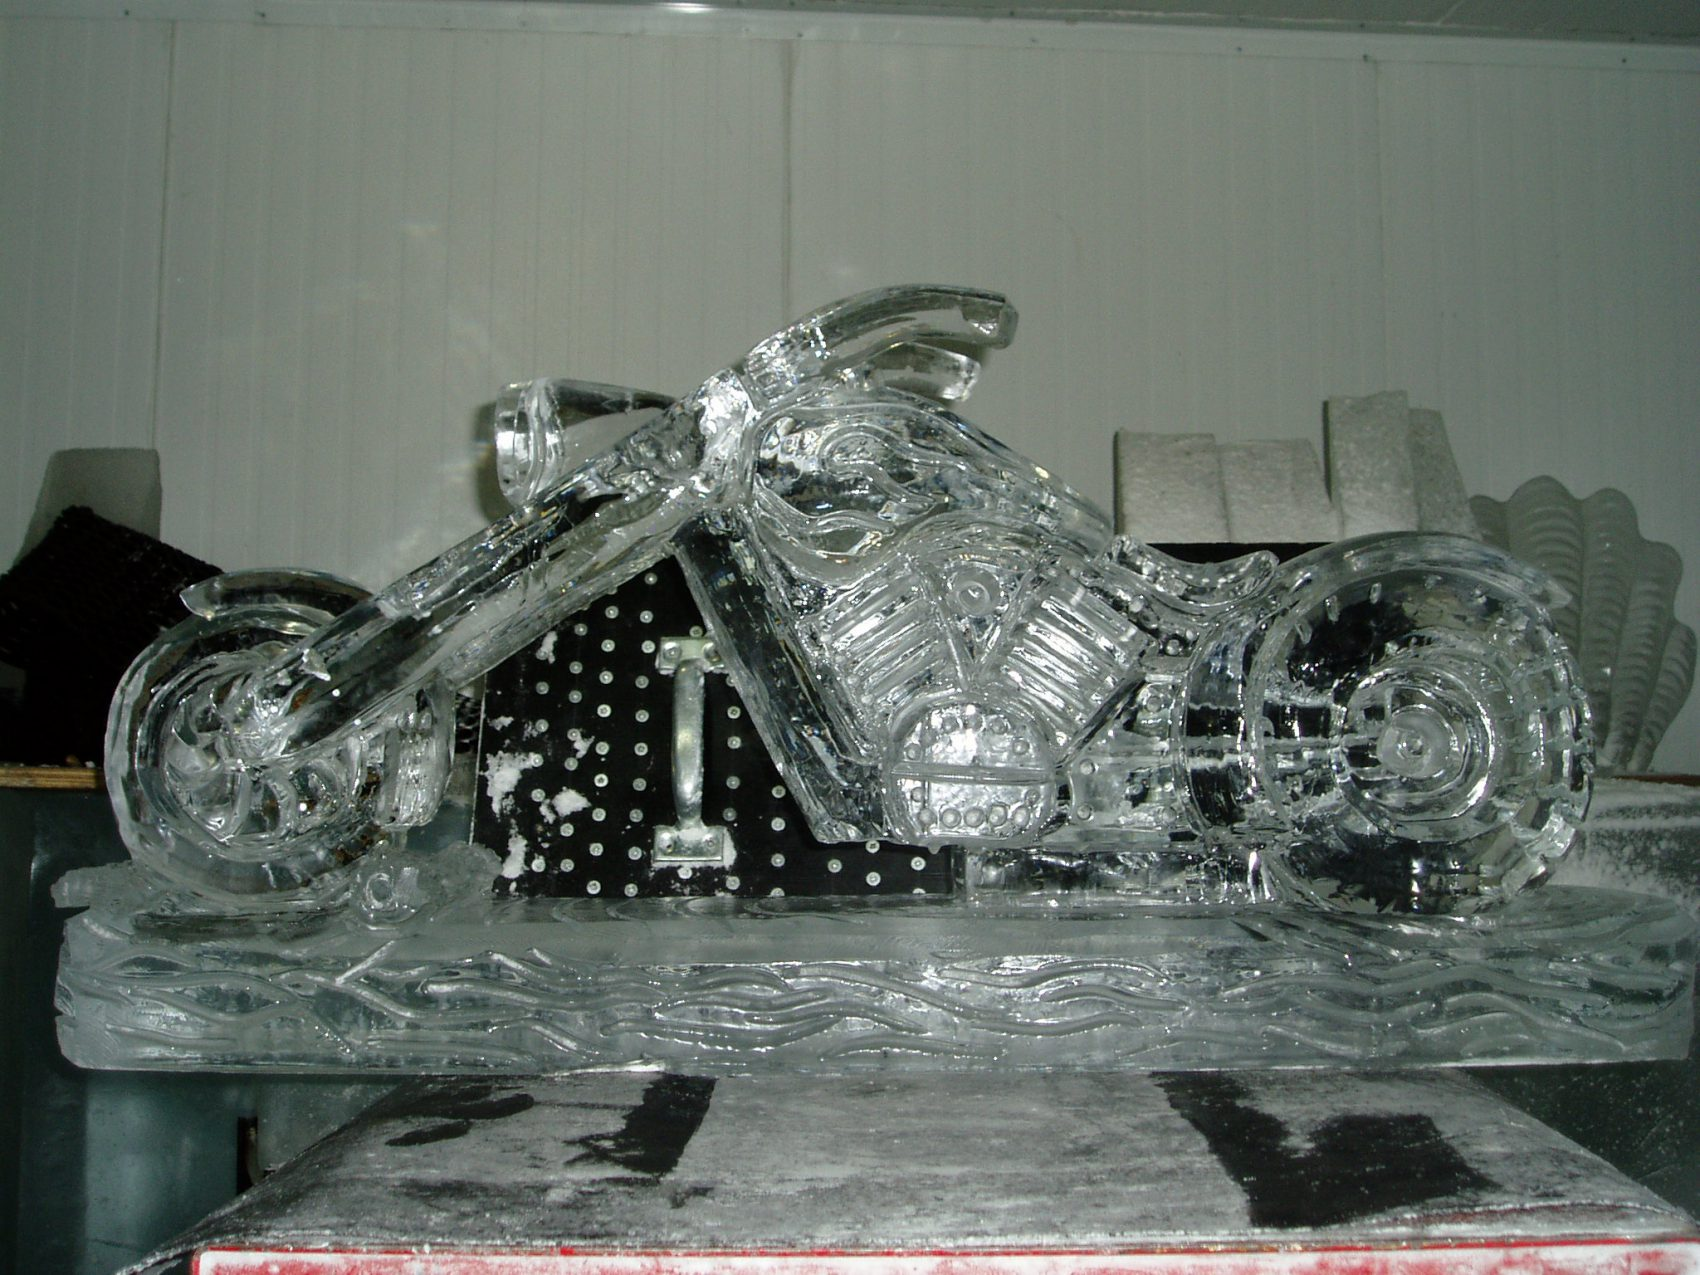 Motorcycle carving